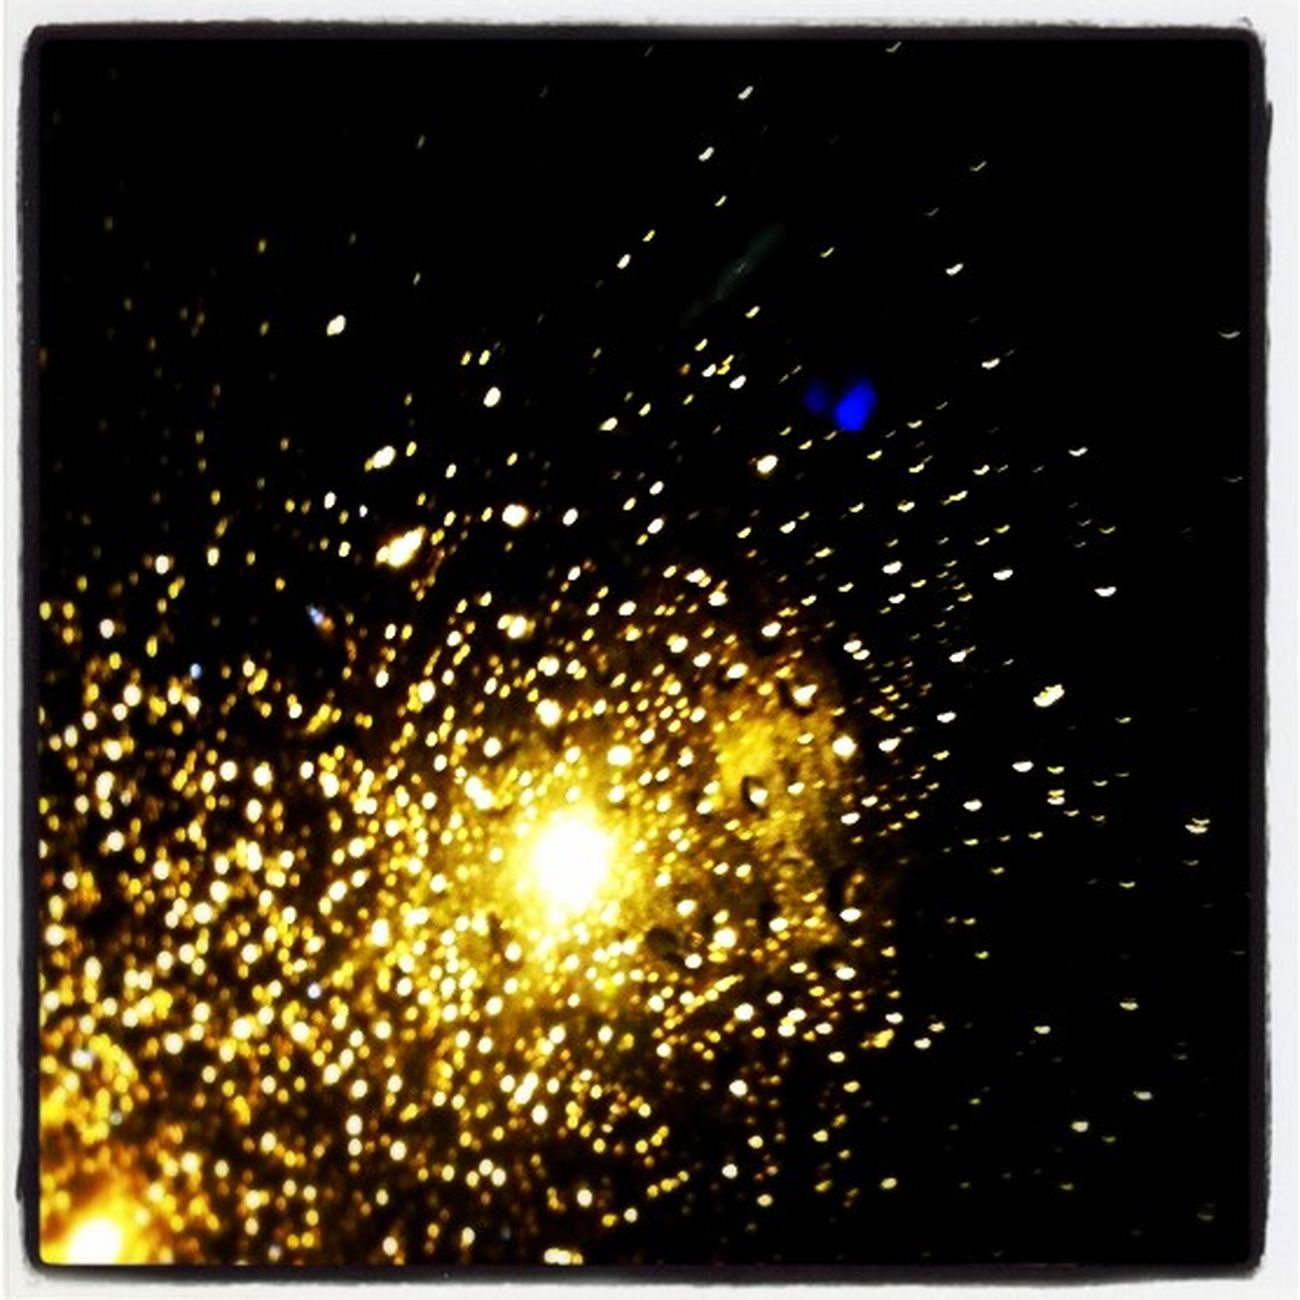 Raindrops Light Drops Light Lighting